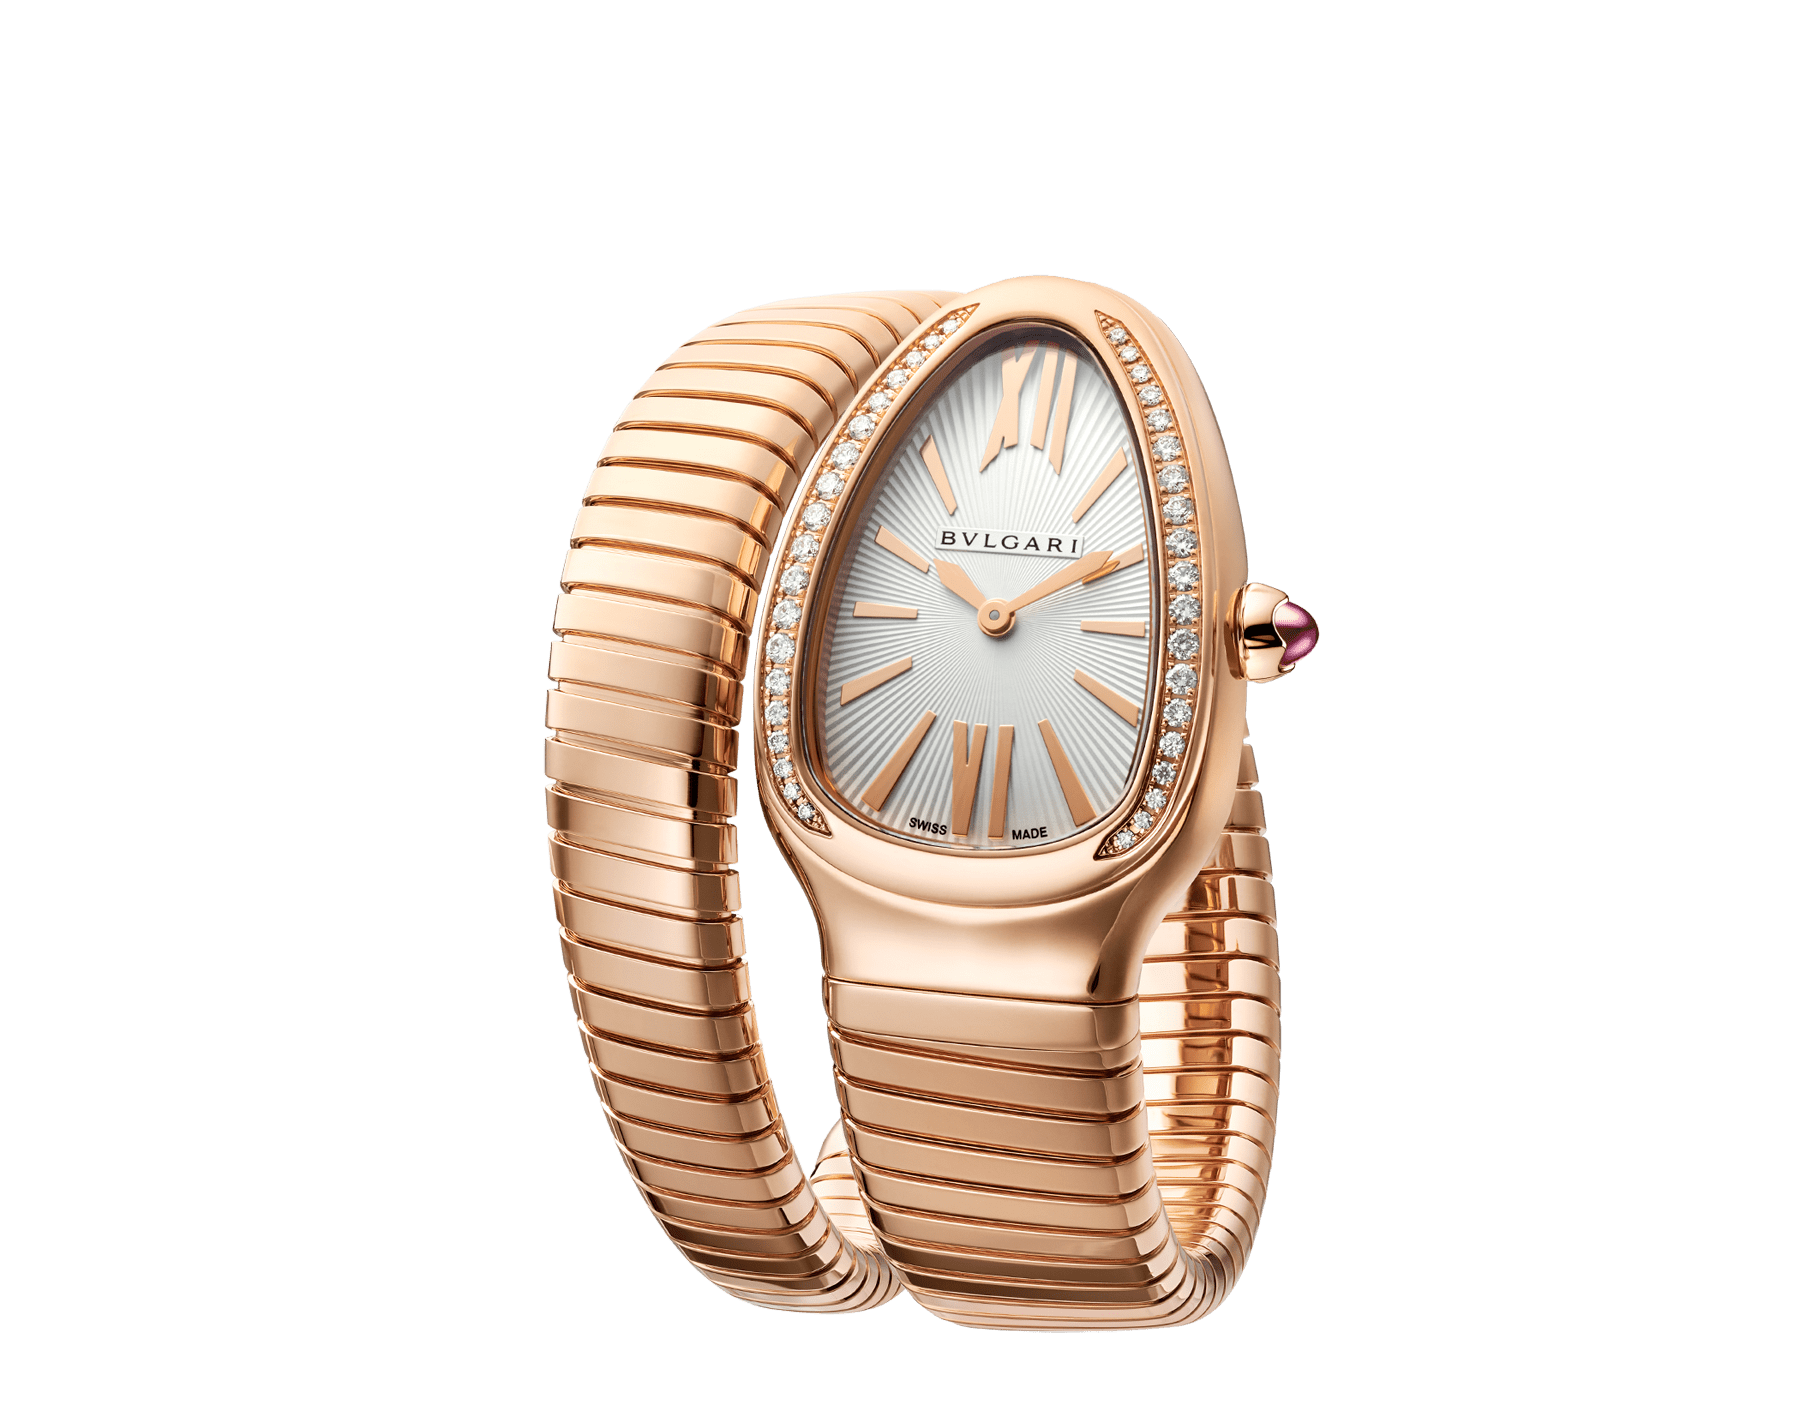 Serpenti Tubogas single spiral watch with 18 kt rose gold case set with brilliant-cut diamonds, silver opaline dial and 18 kt rose gold bracelet 103003 image 2